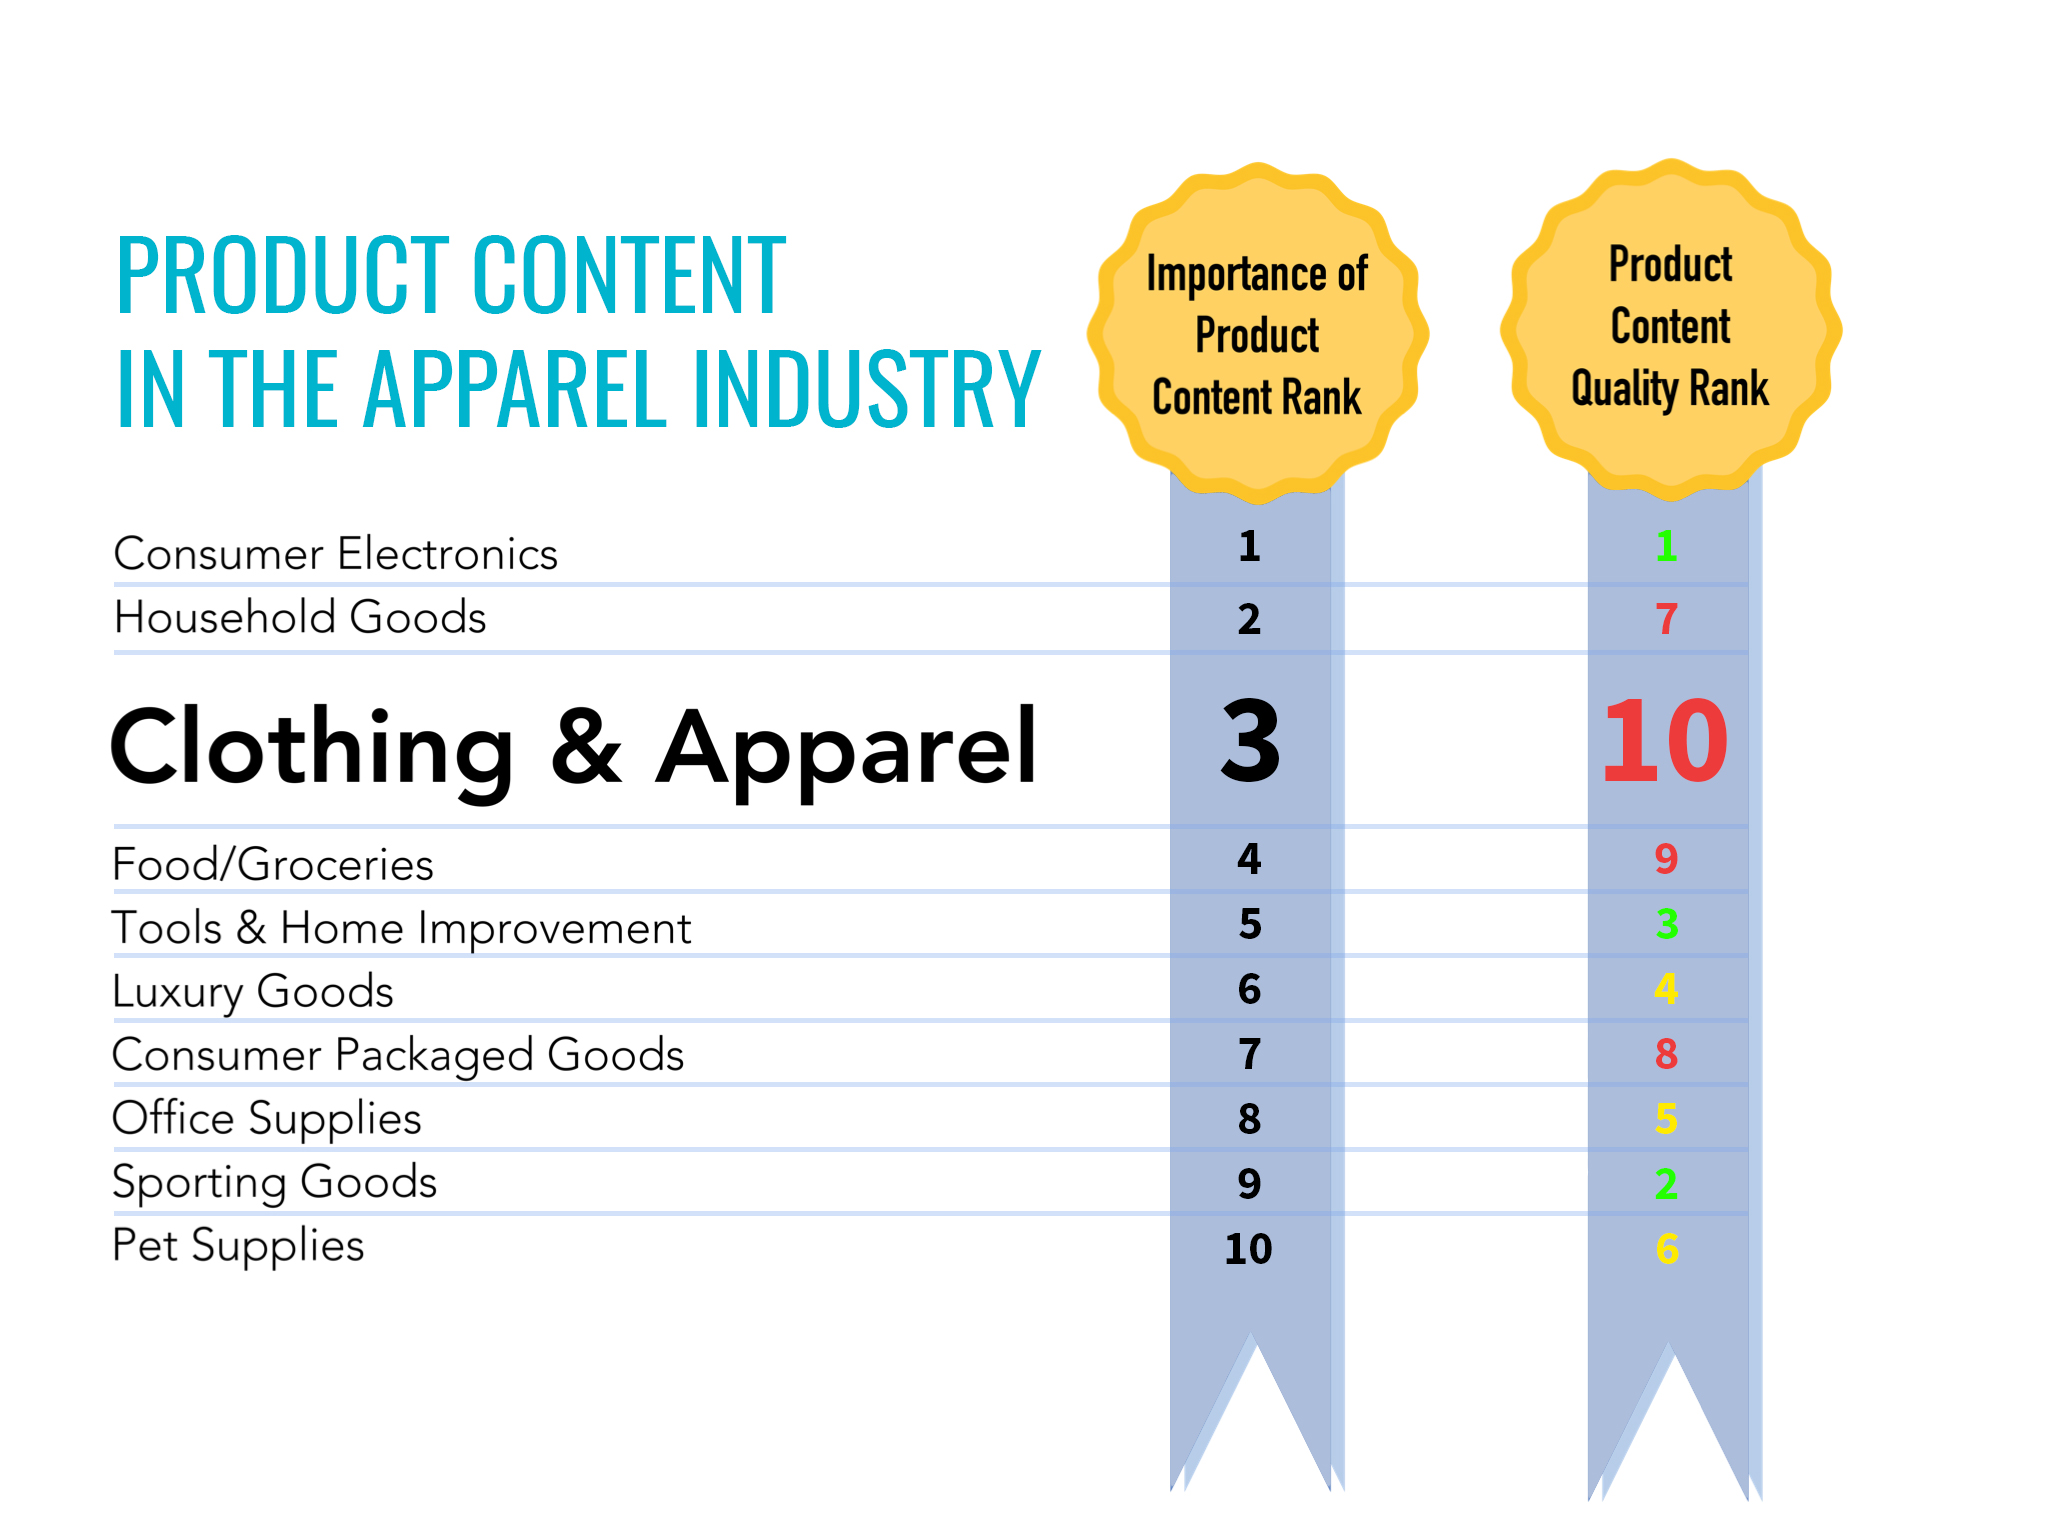 Quality of Product Content in the Apparel Industry chart